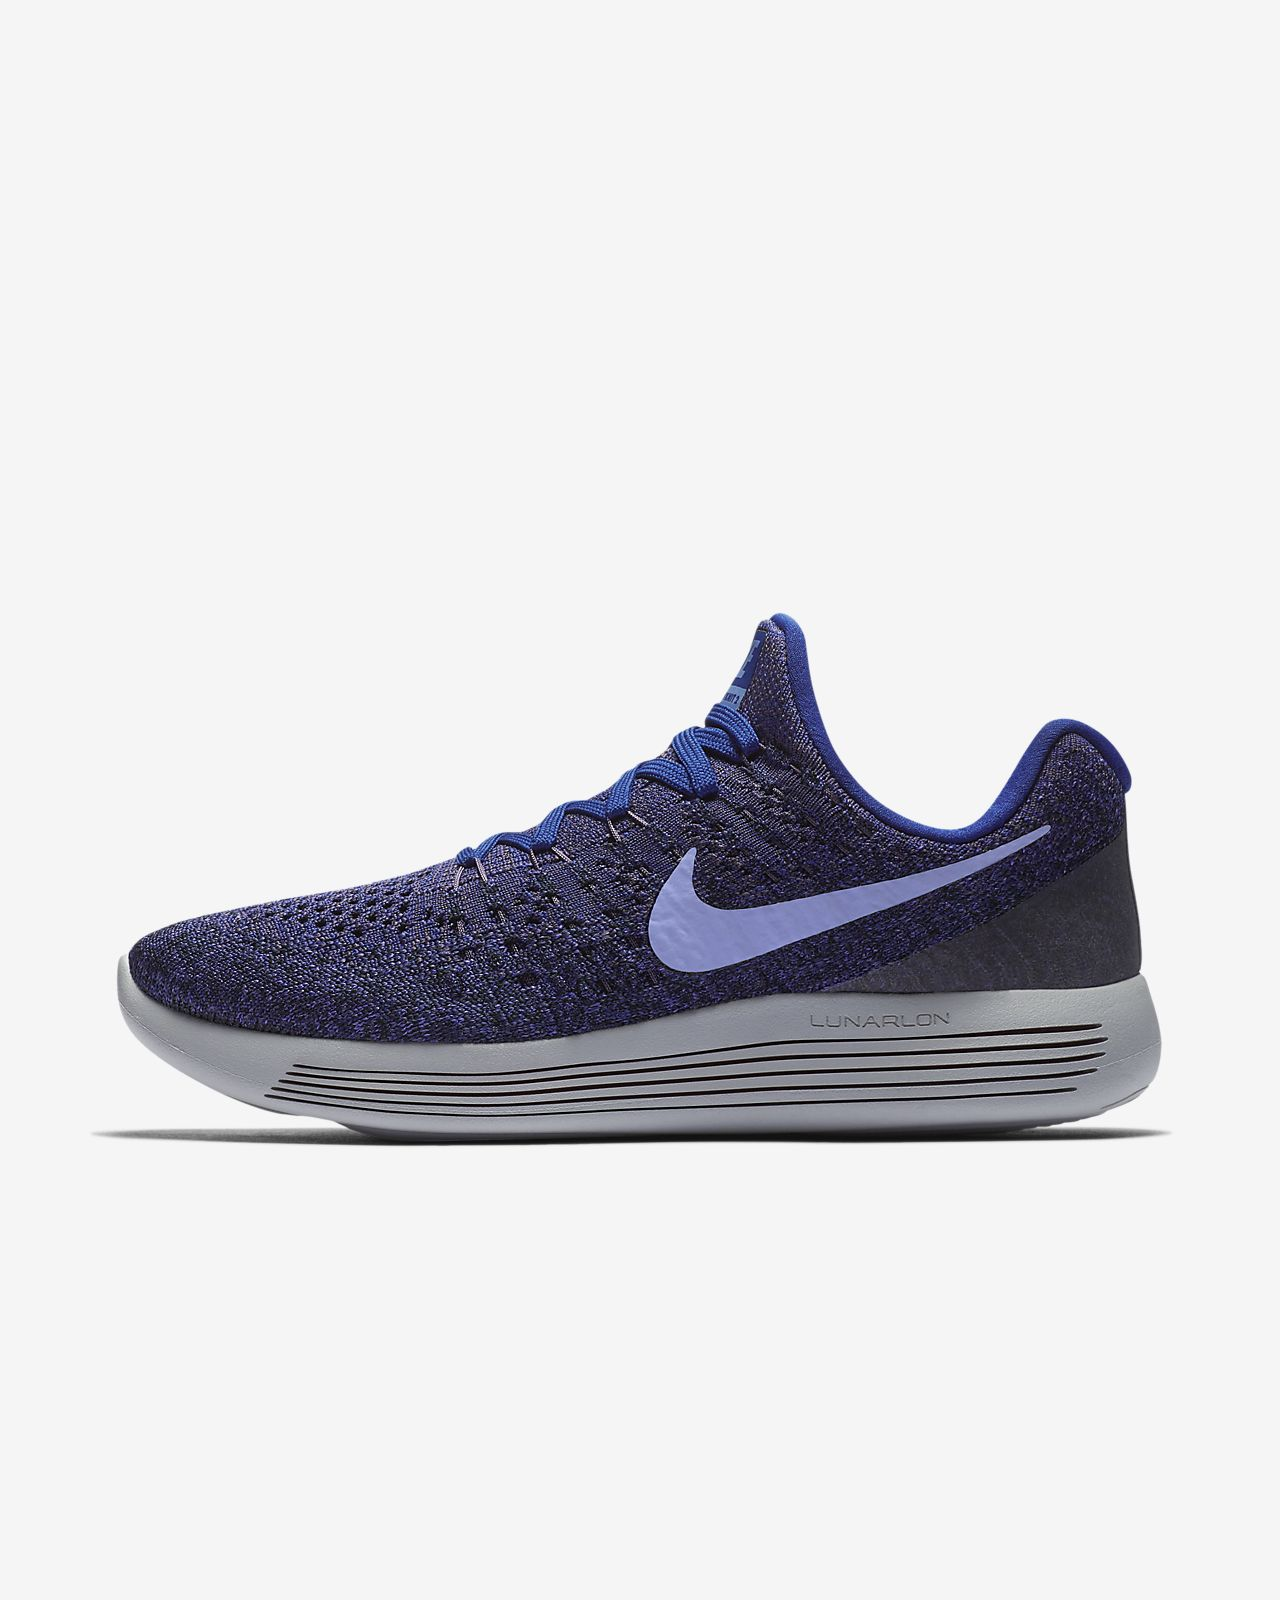 74099626b625f Nike LunarEpic Low Flyknit 2 Women s Running Shoe. Nike.com SG